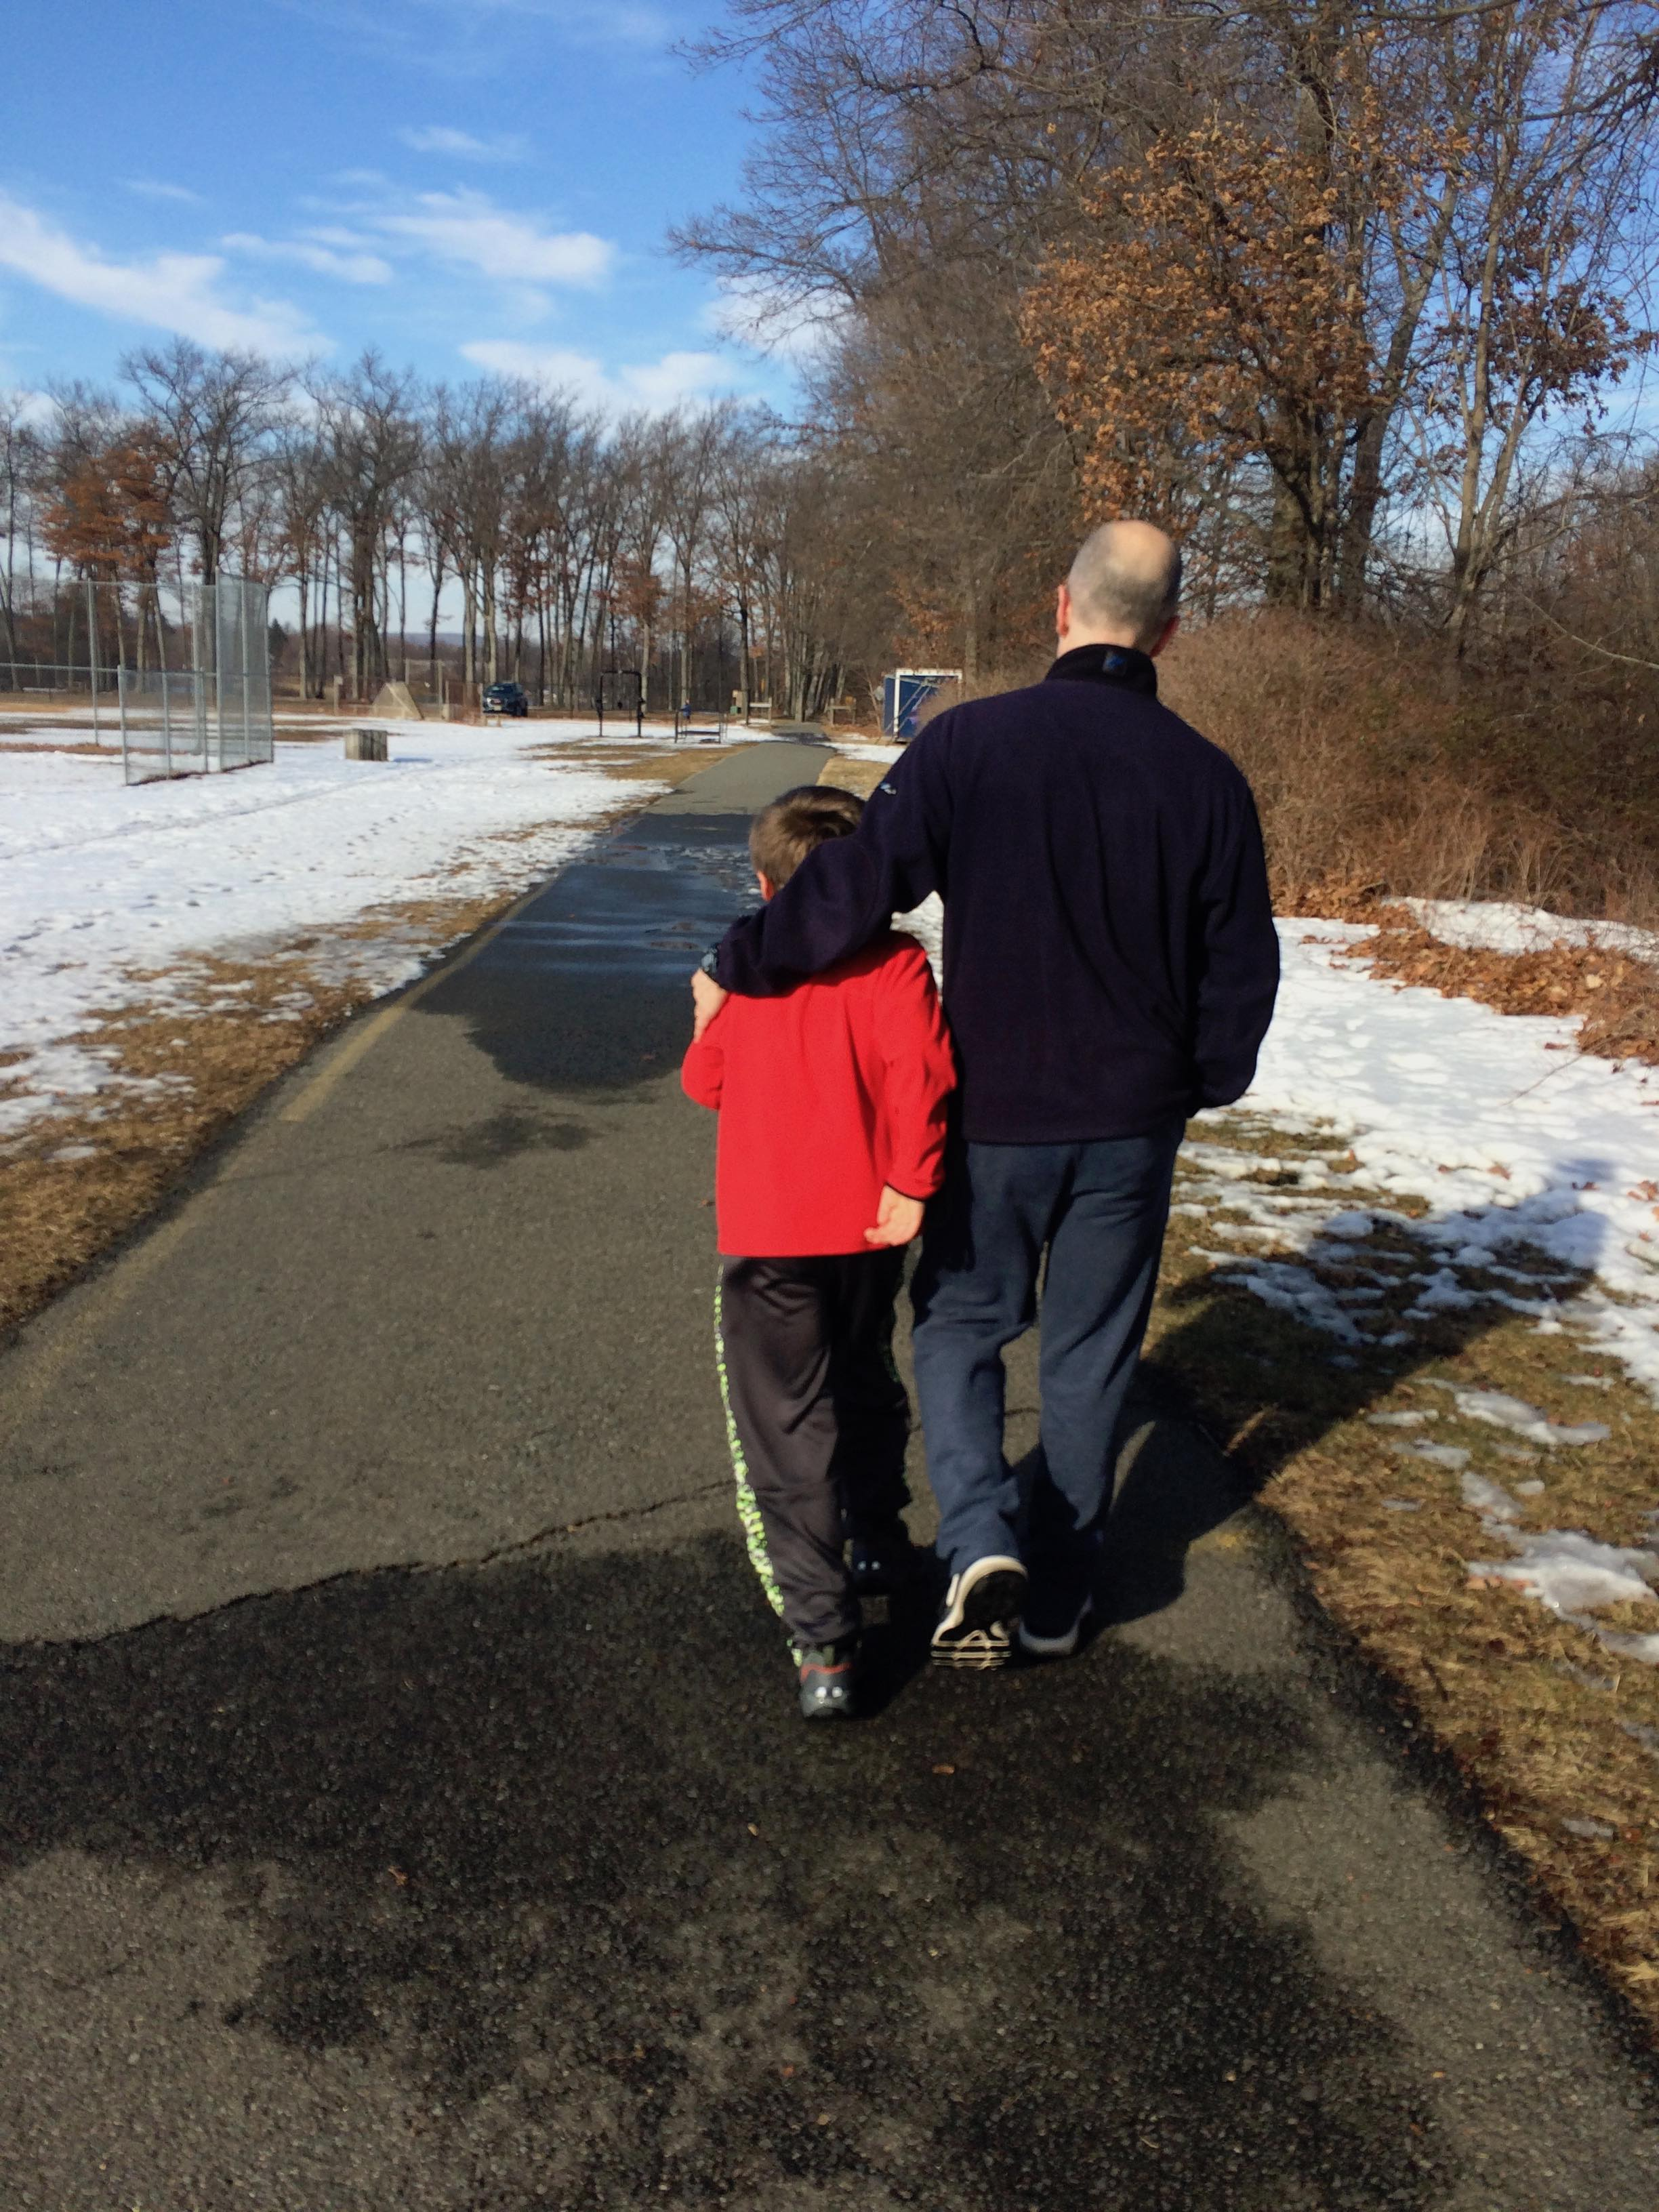 Dad and son walking together. It's important for parents to talk to their children about bad news.